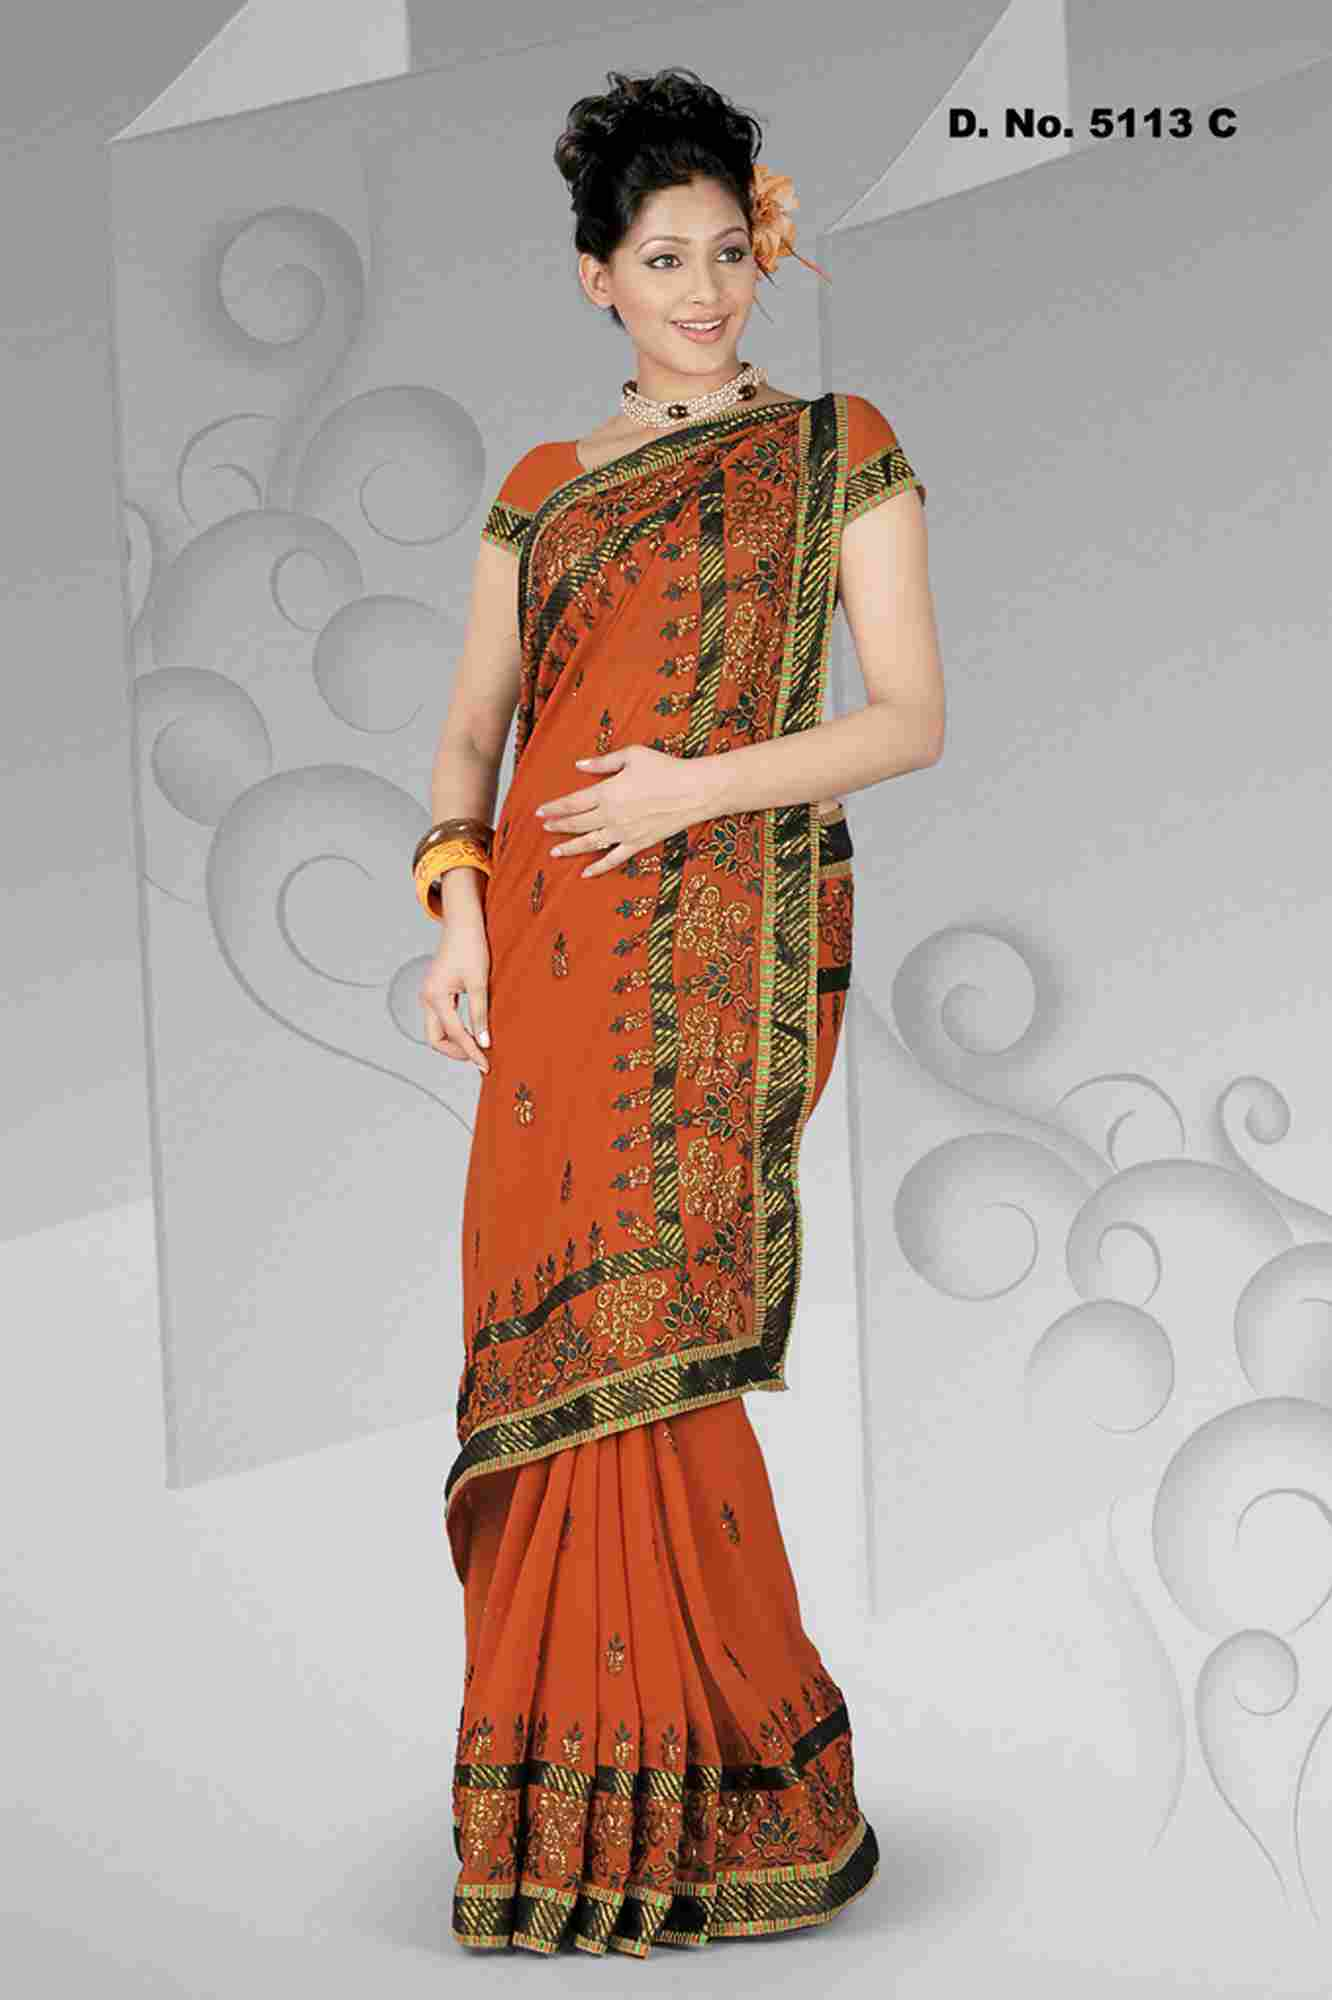 Indian Selections Avinashi Evening Party Wear Georgette Sari at Sears.com